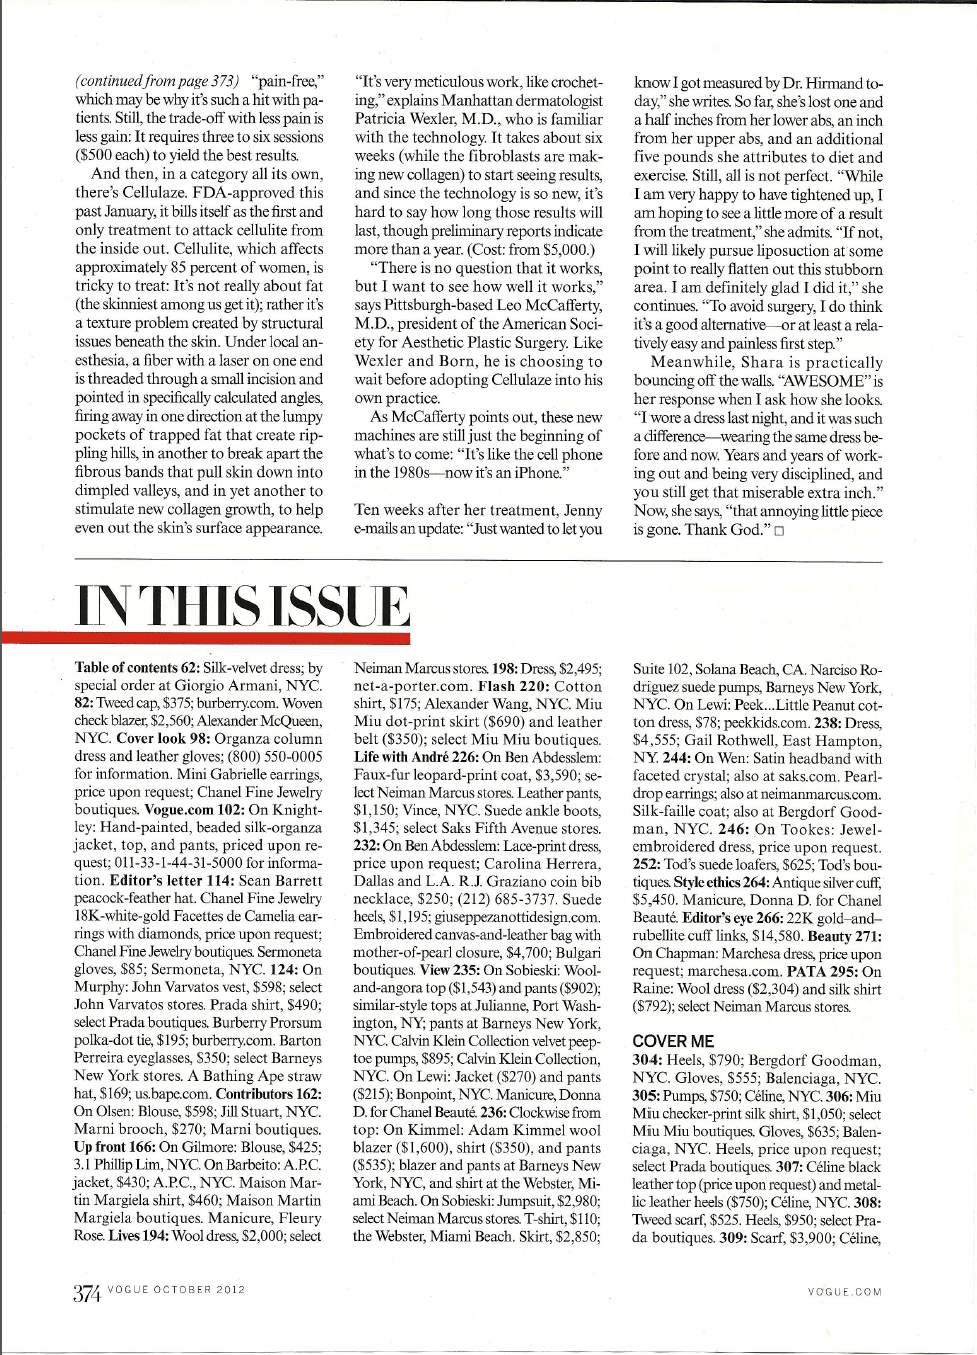 coolsculpting in vogue magazine 5